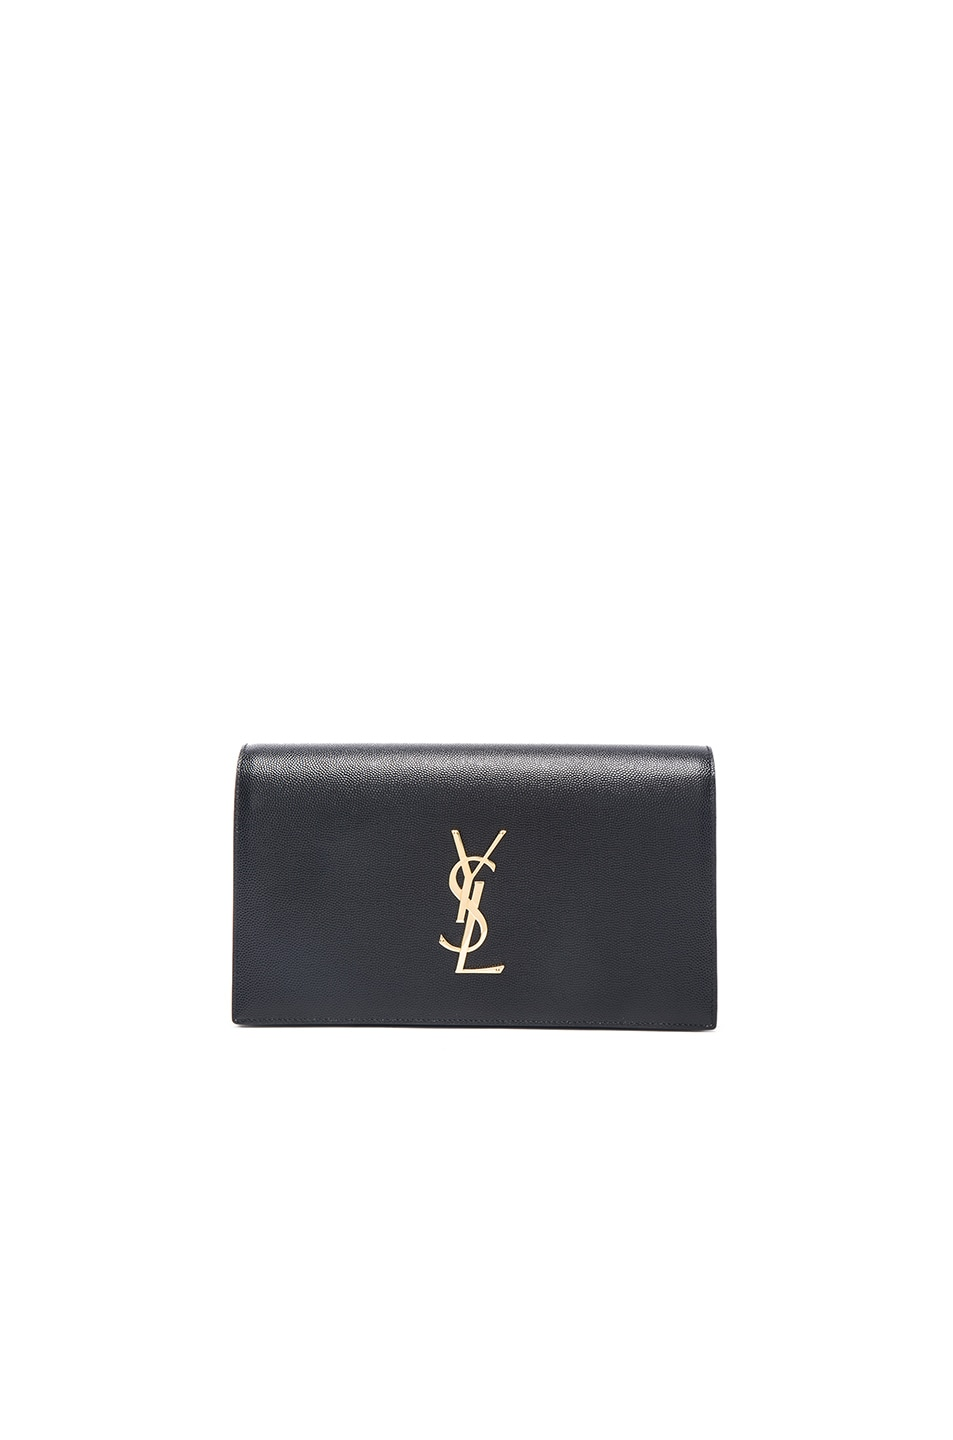 ysl purple shoes - monogram saint laurent envelope chain wallet in white and black ...